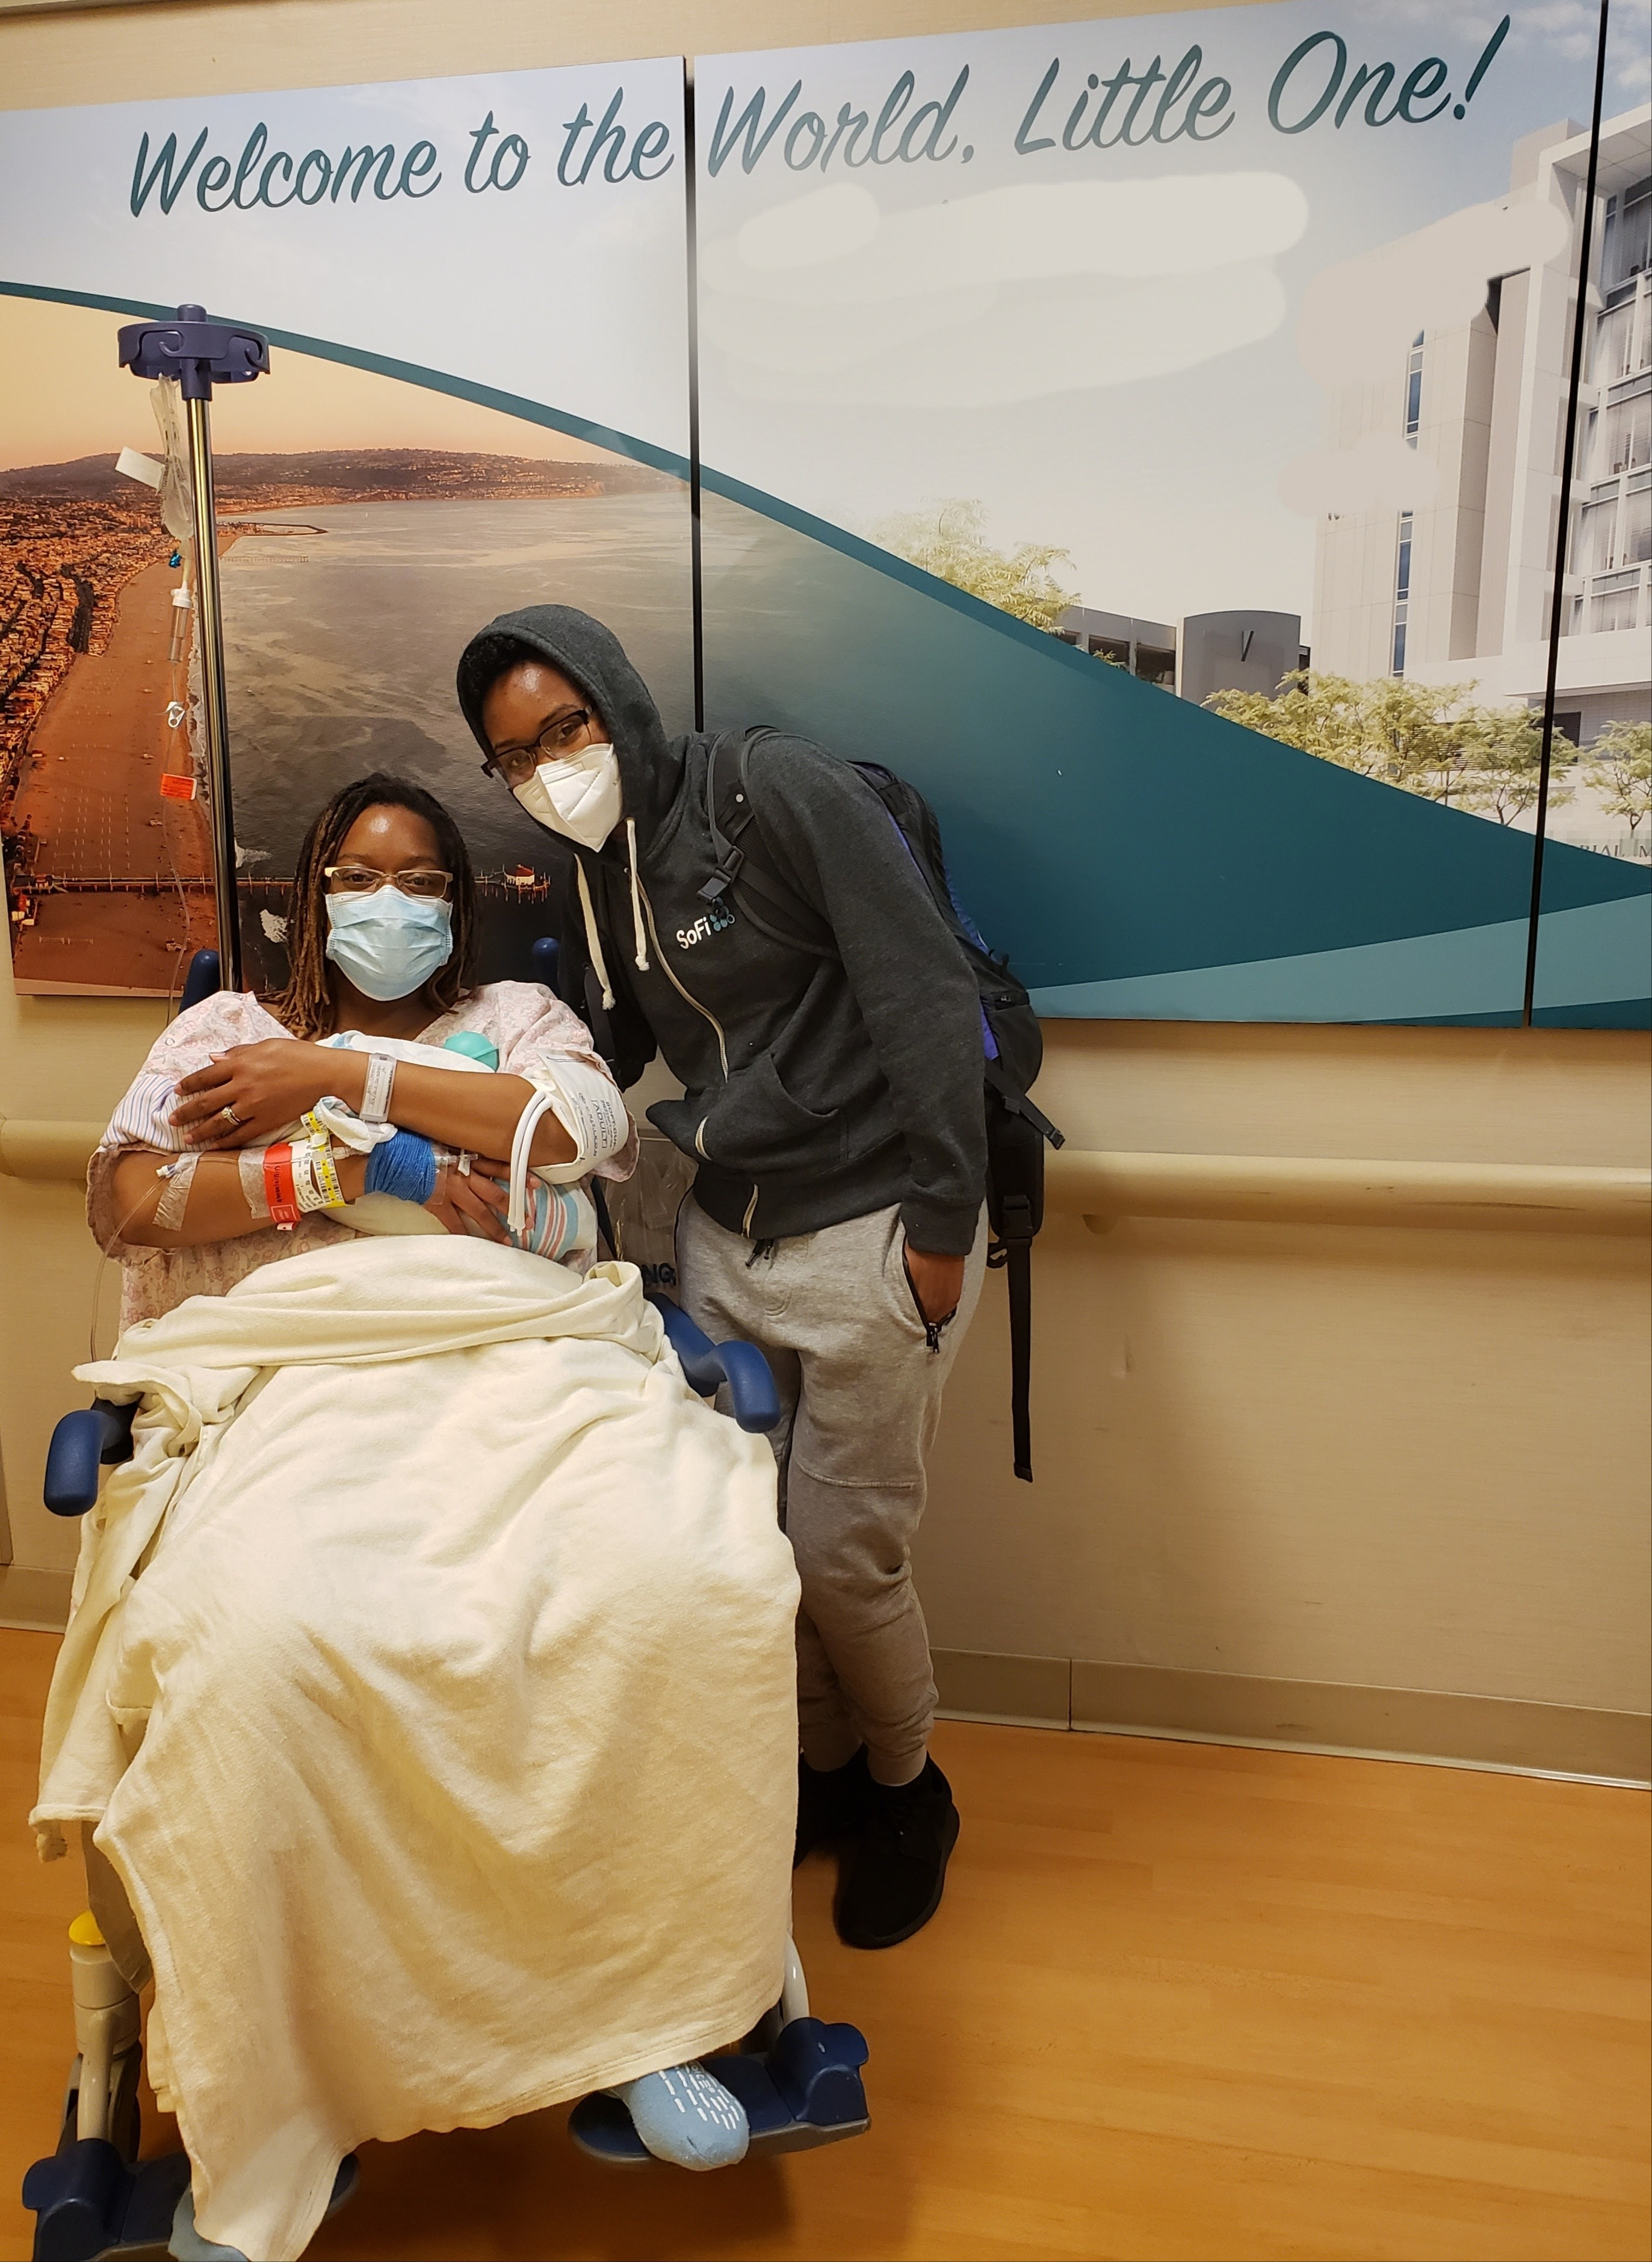 Precious and her wife in the hospital shortly after their baby's birth